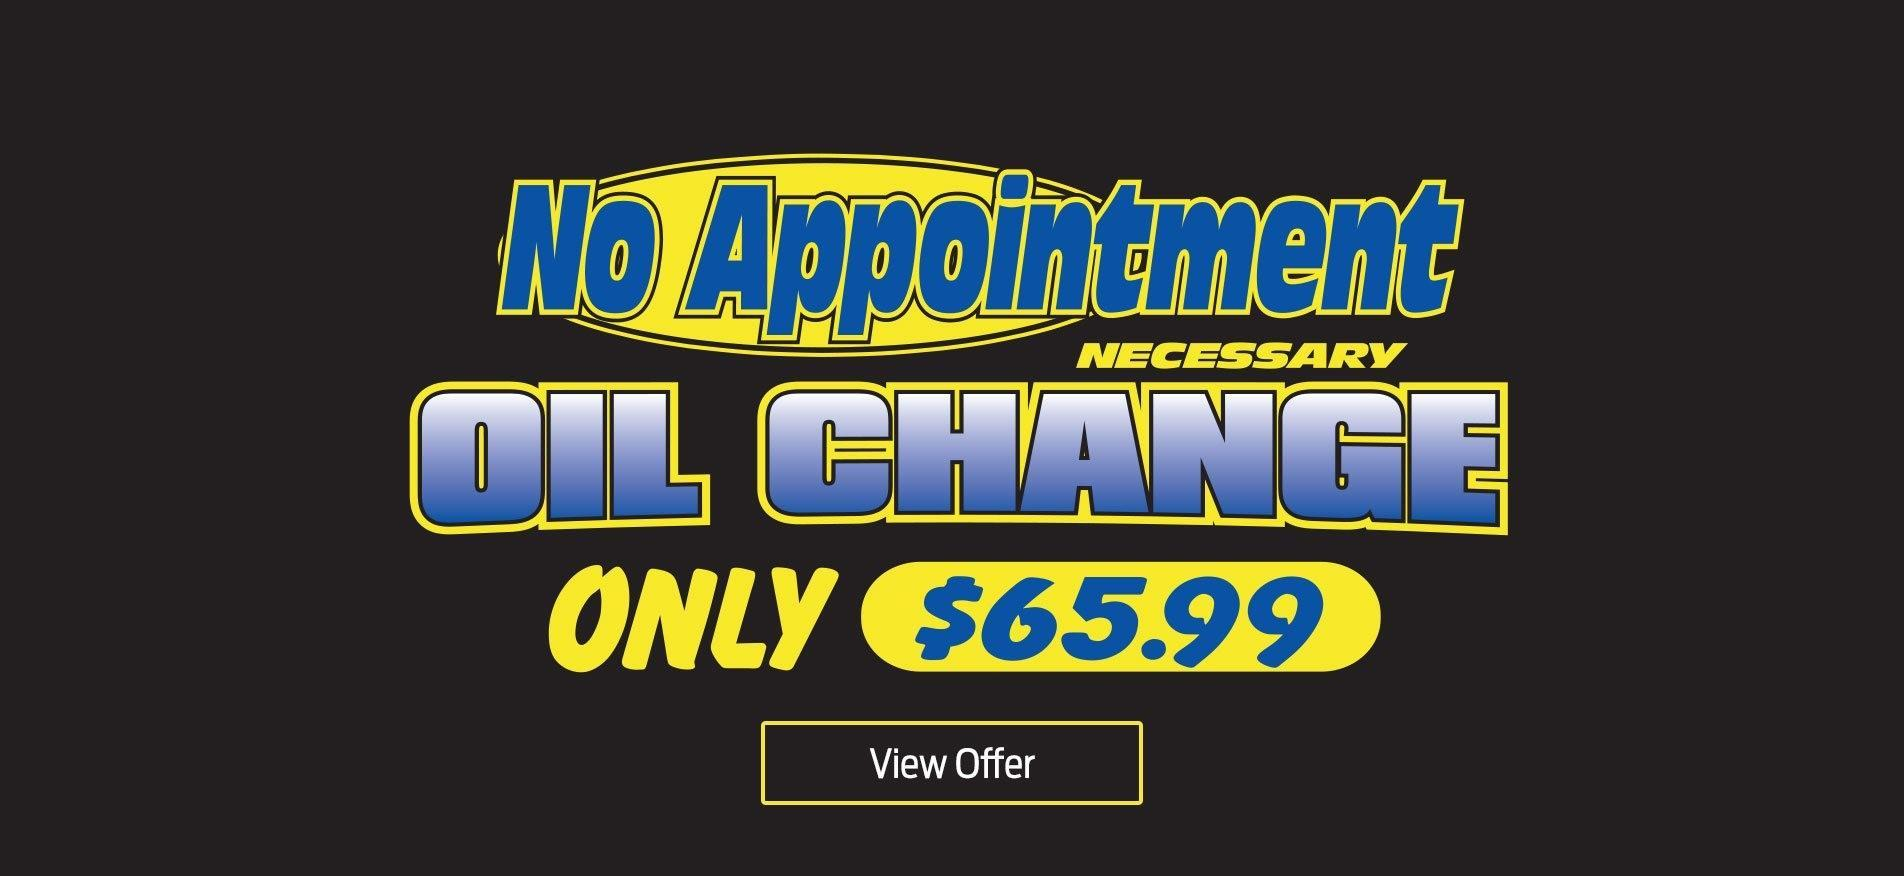 No appointment necessary oil change.